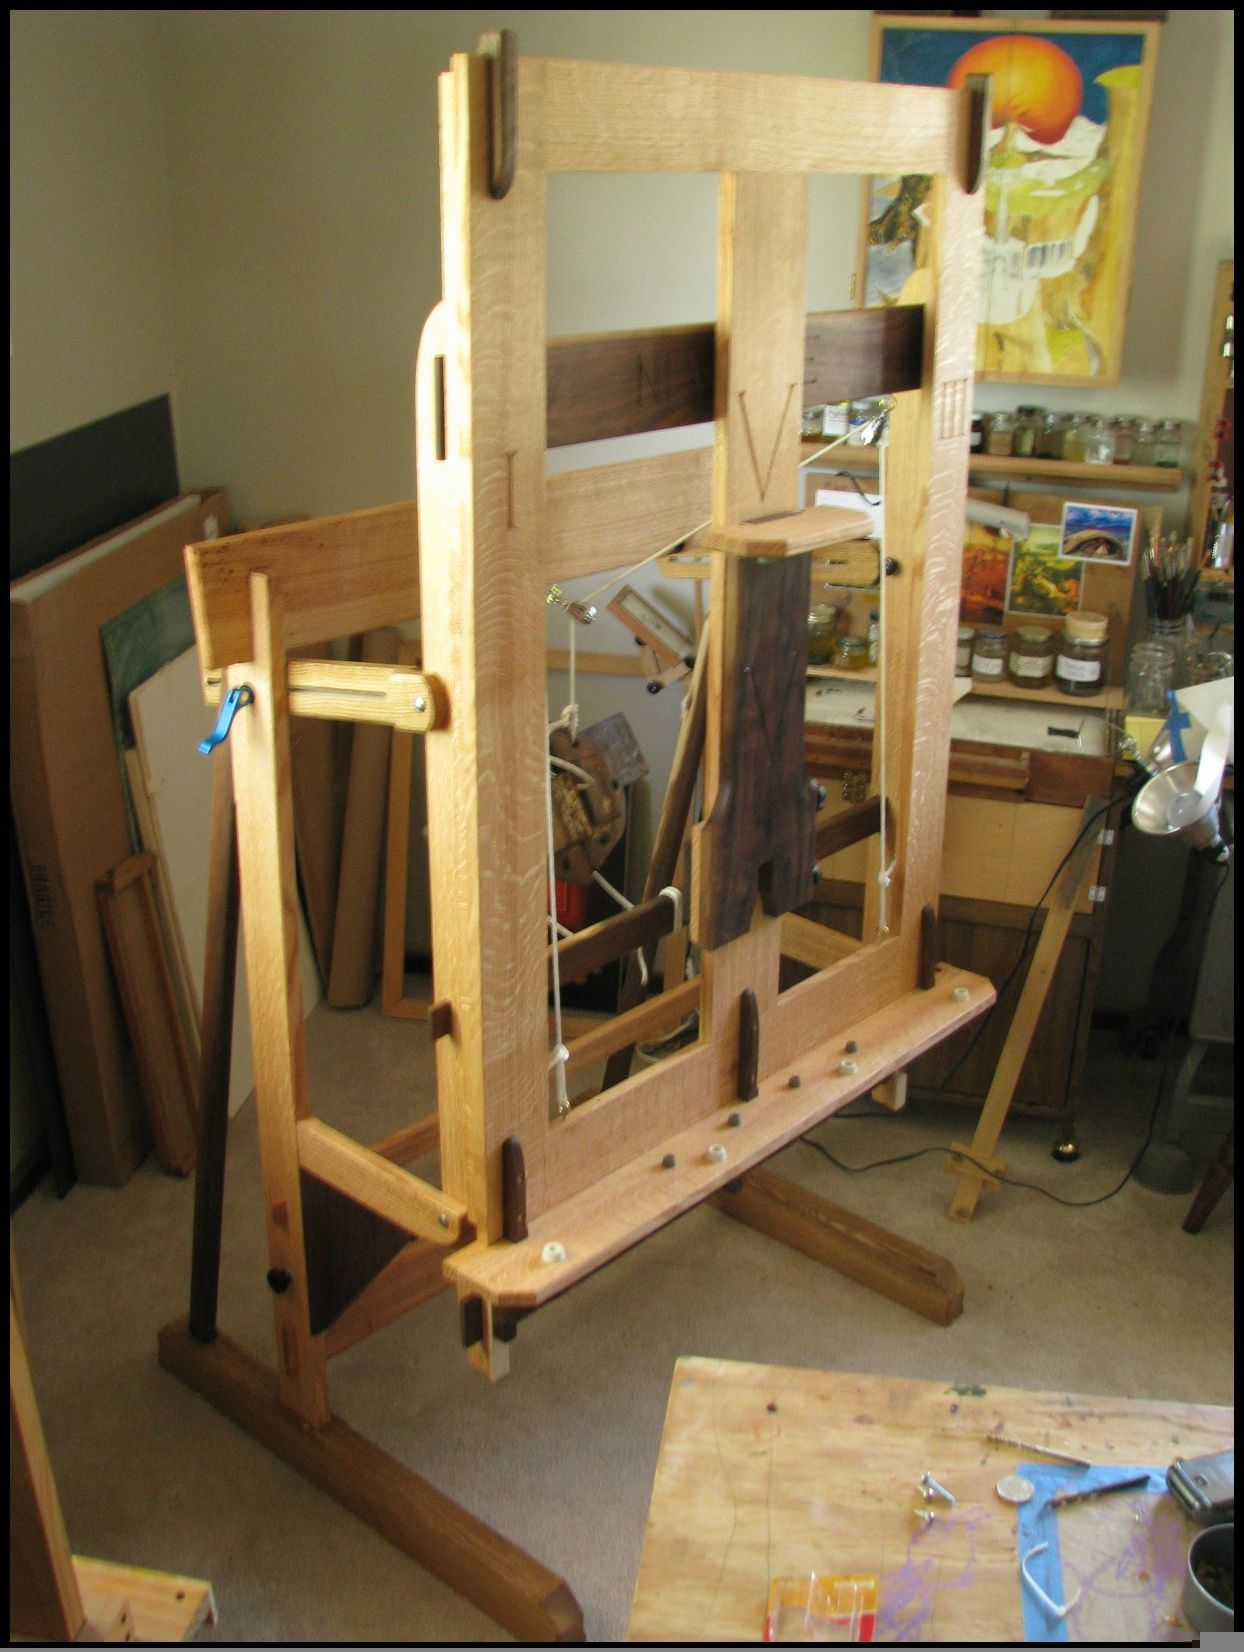 Build Woodworking Easel Plans Diy 1 Sheet Plywood Projects Woodworkin In 2020 Woodworking Projects Furniture Woodworking Furniture Plans Woodworking Projects That Sell